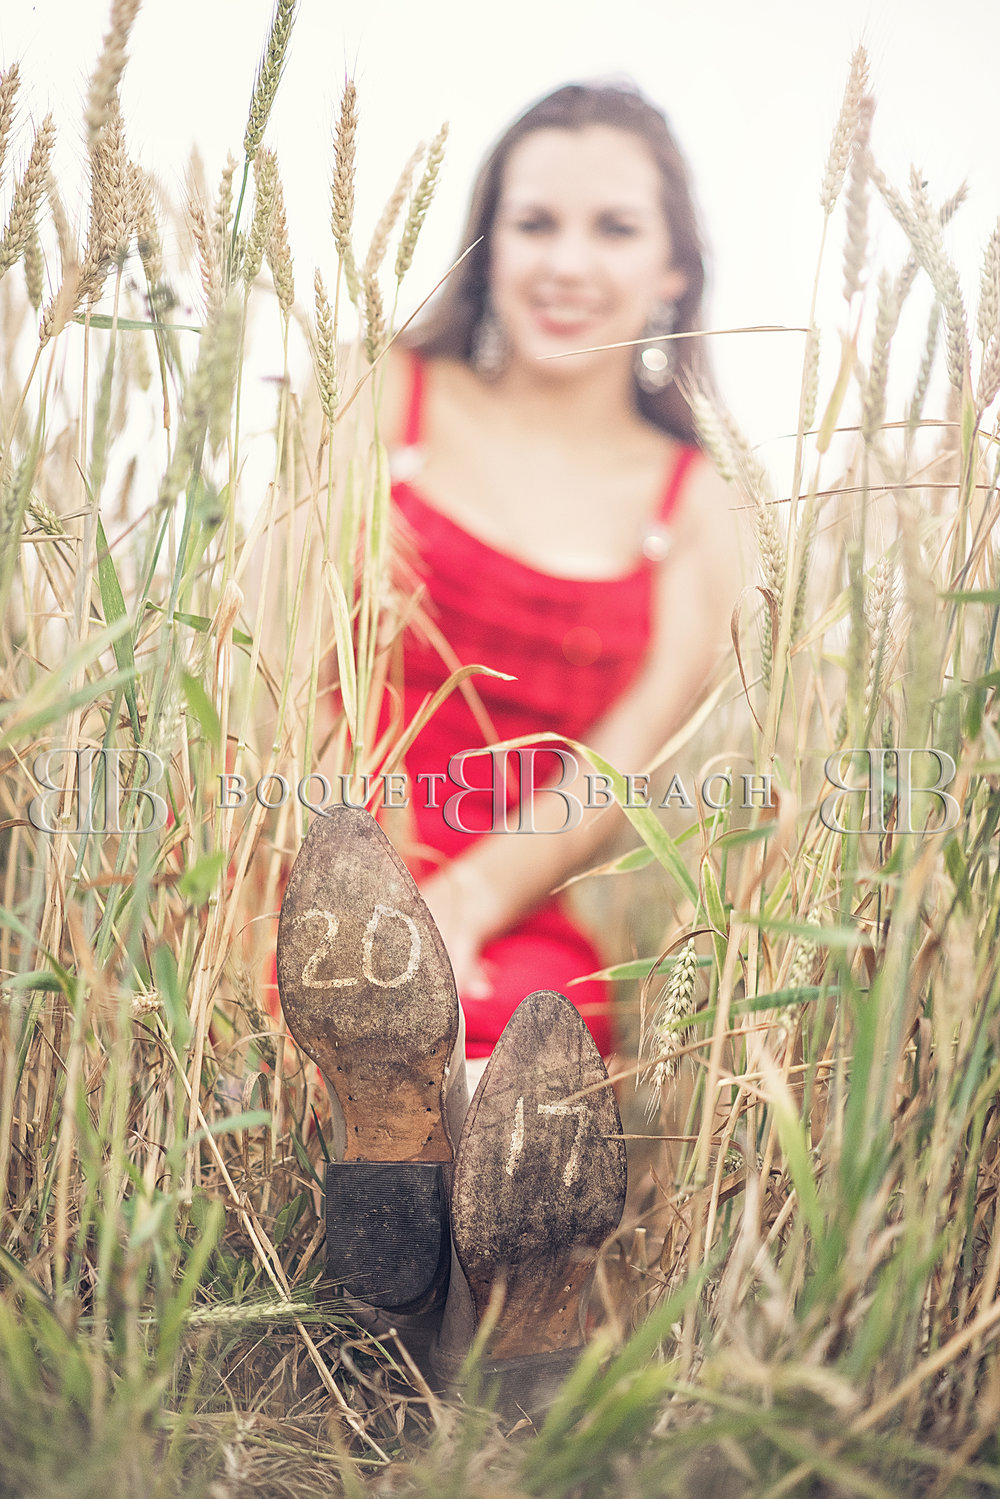 Breland wheat field boots 2017 senior.jpg